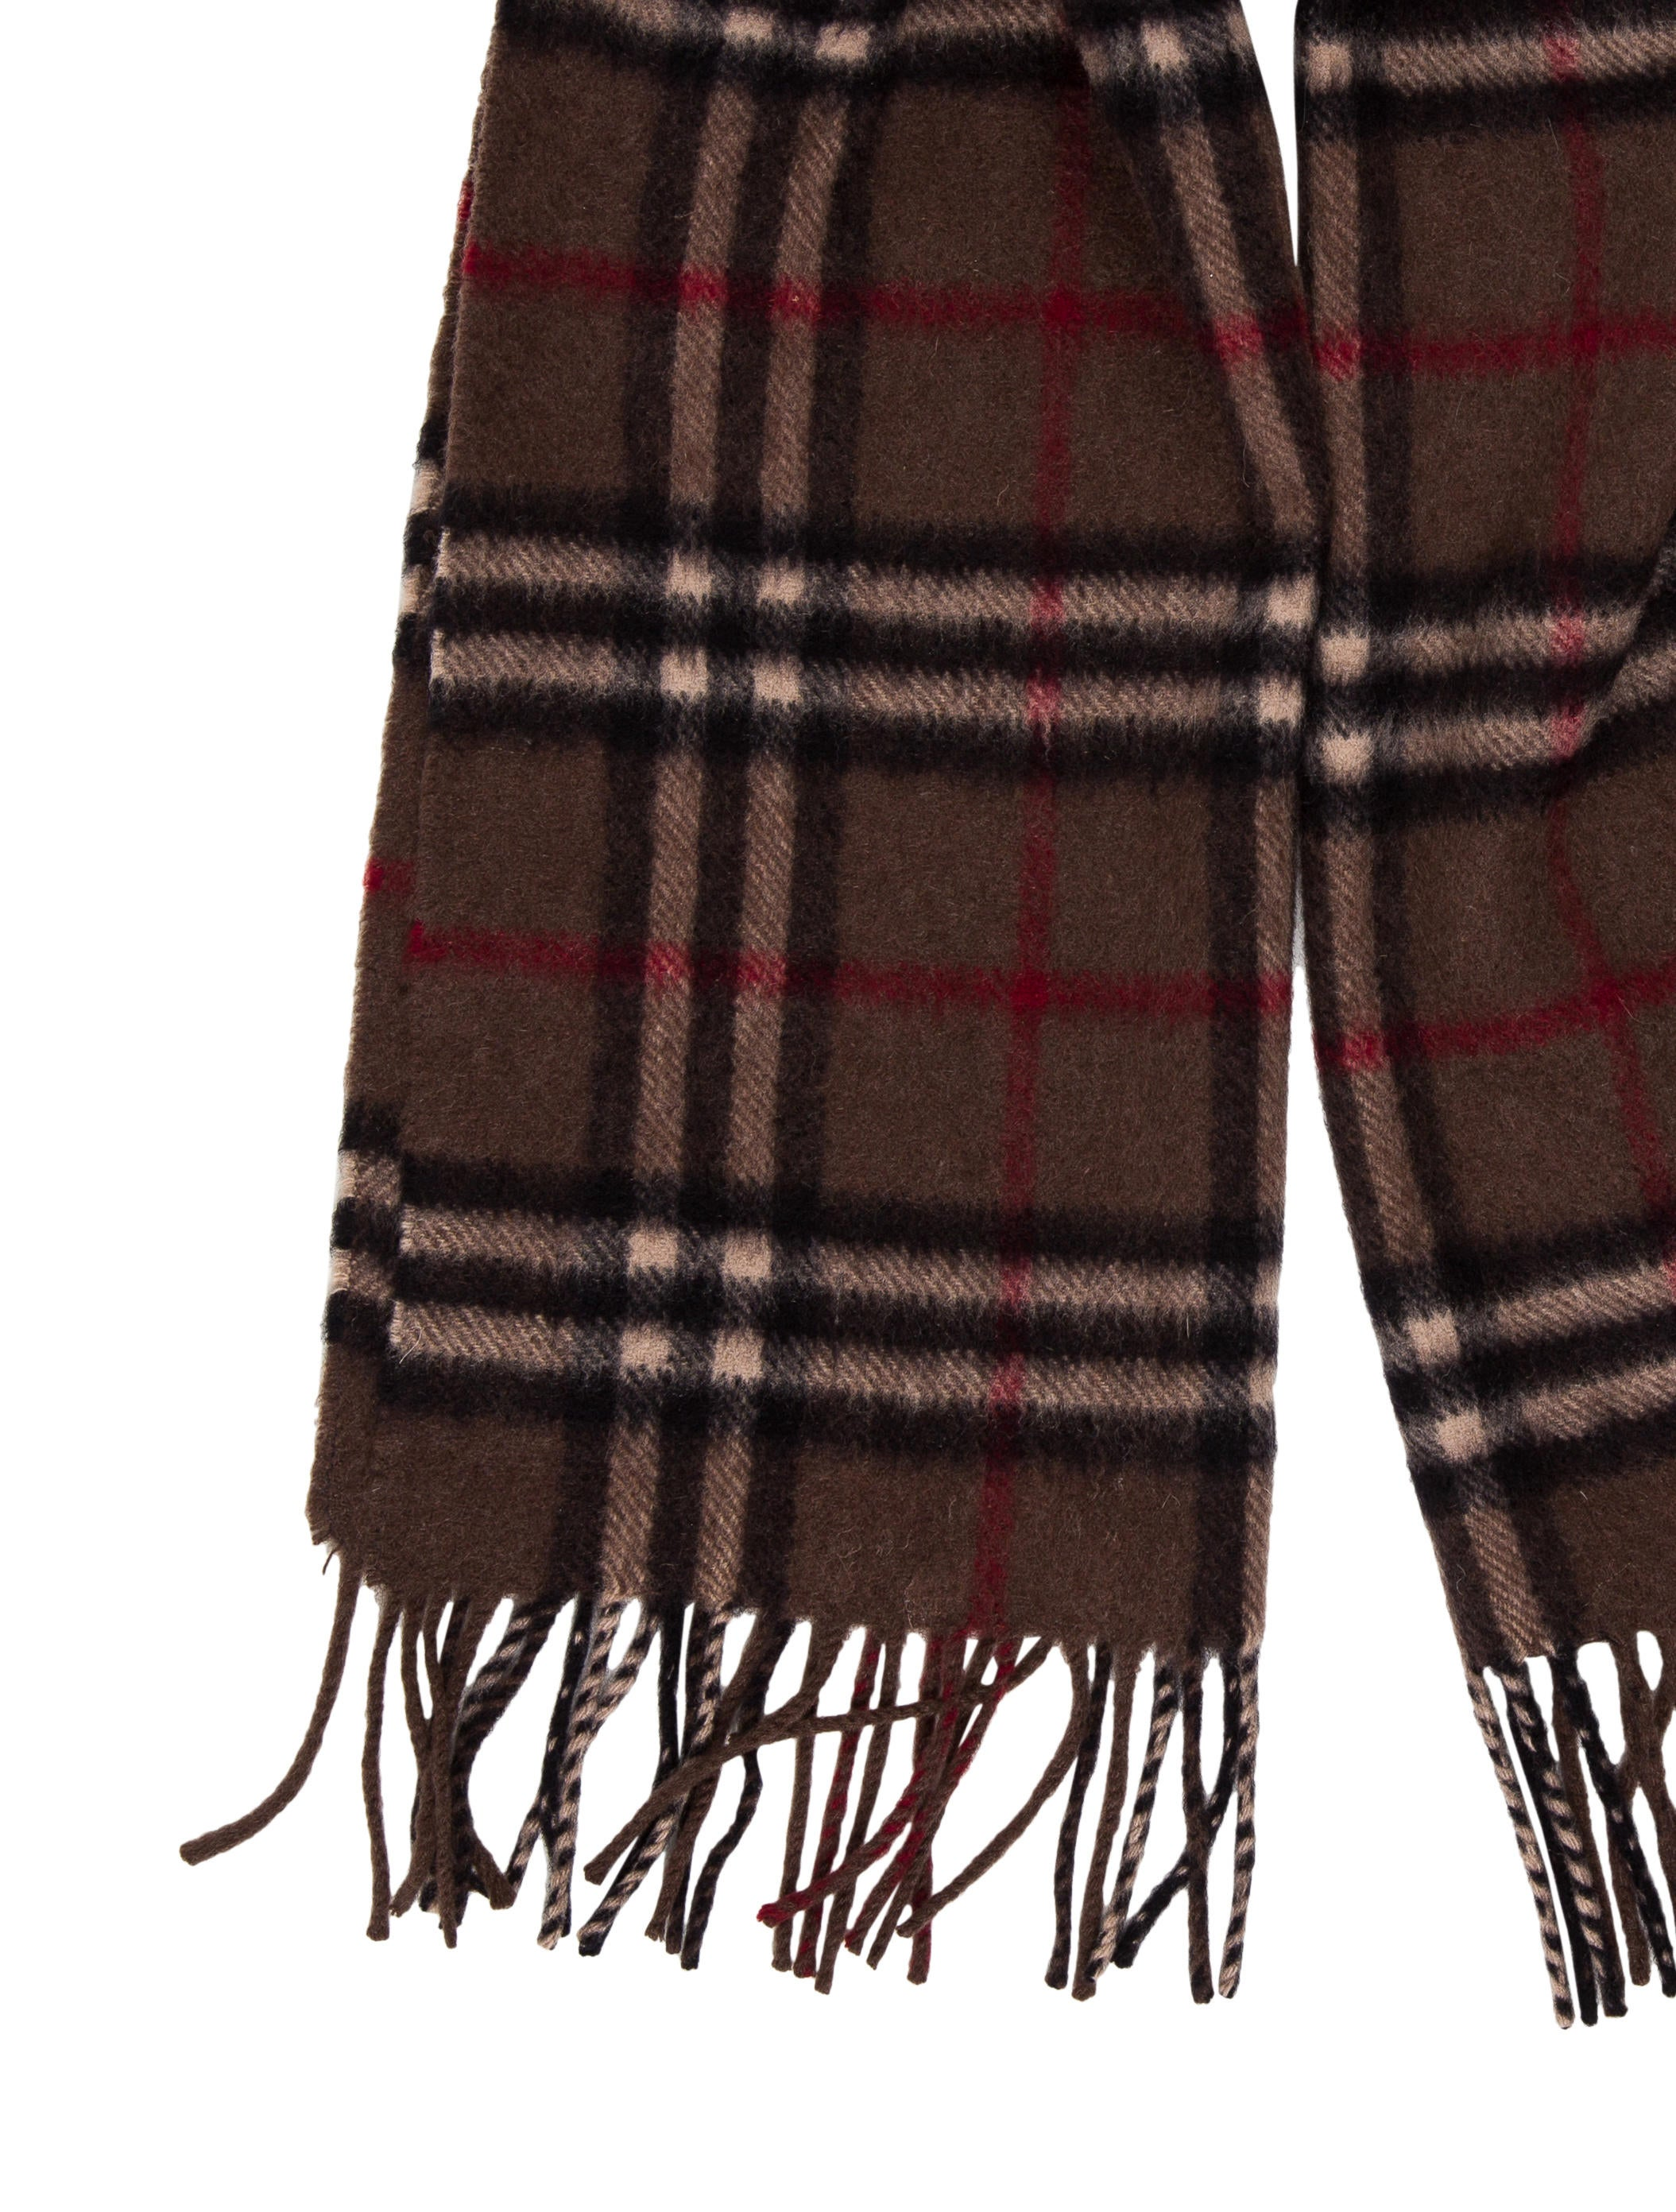 Burberry Cashmere Nova Check Scarf Accessories  : BUR765152enlarged from www.therealreal.com size 2109 x 2783 jpeg 680kB